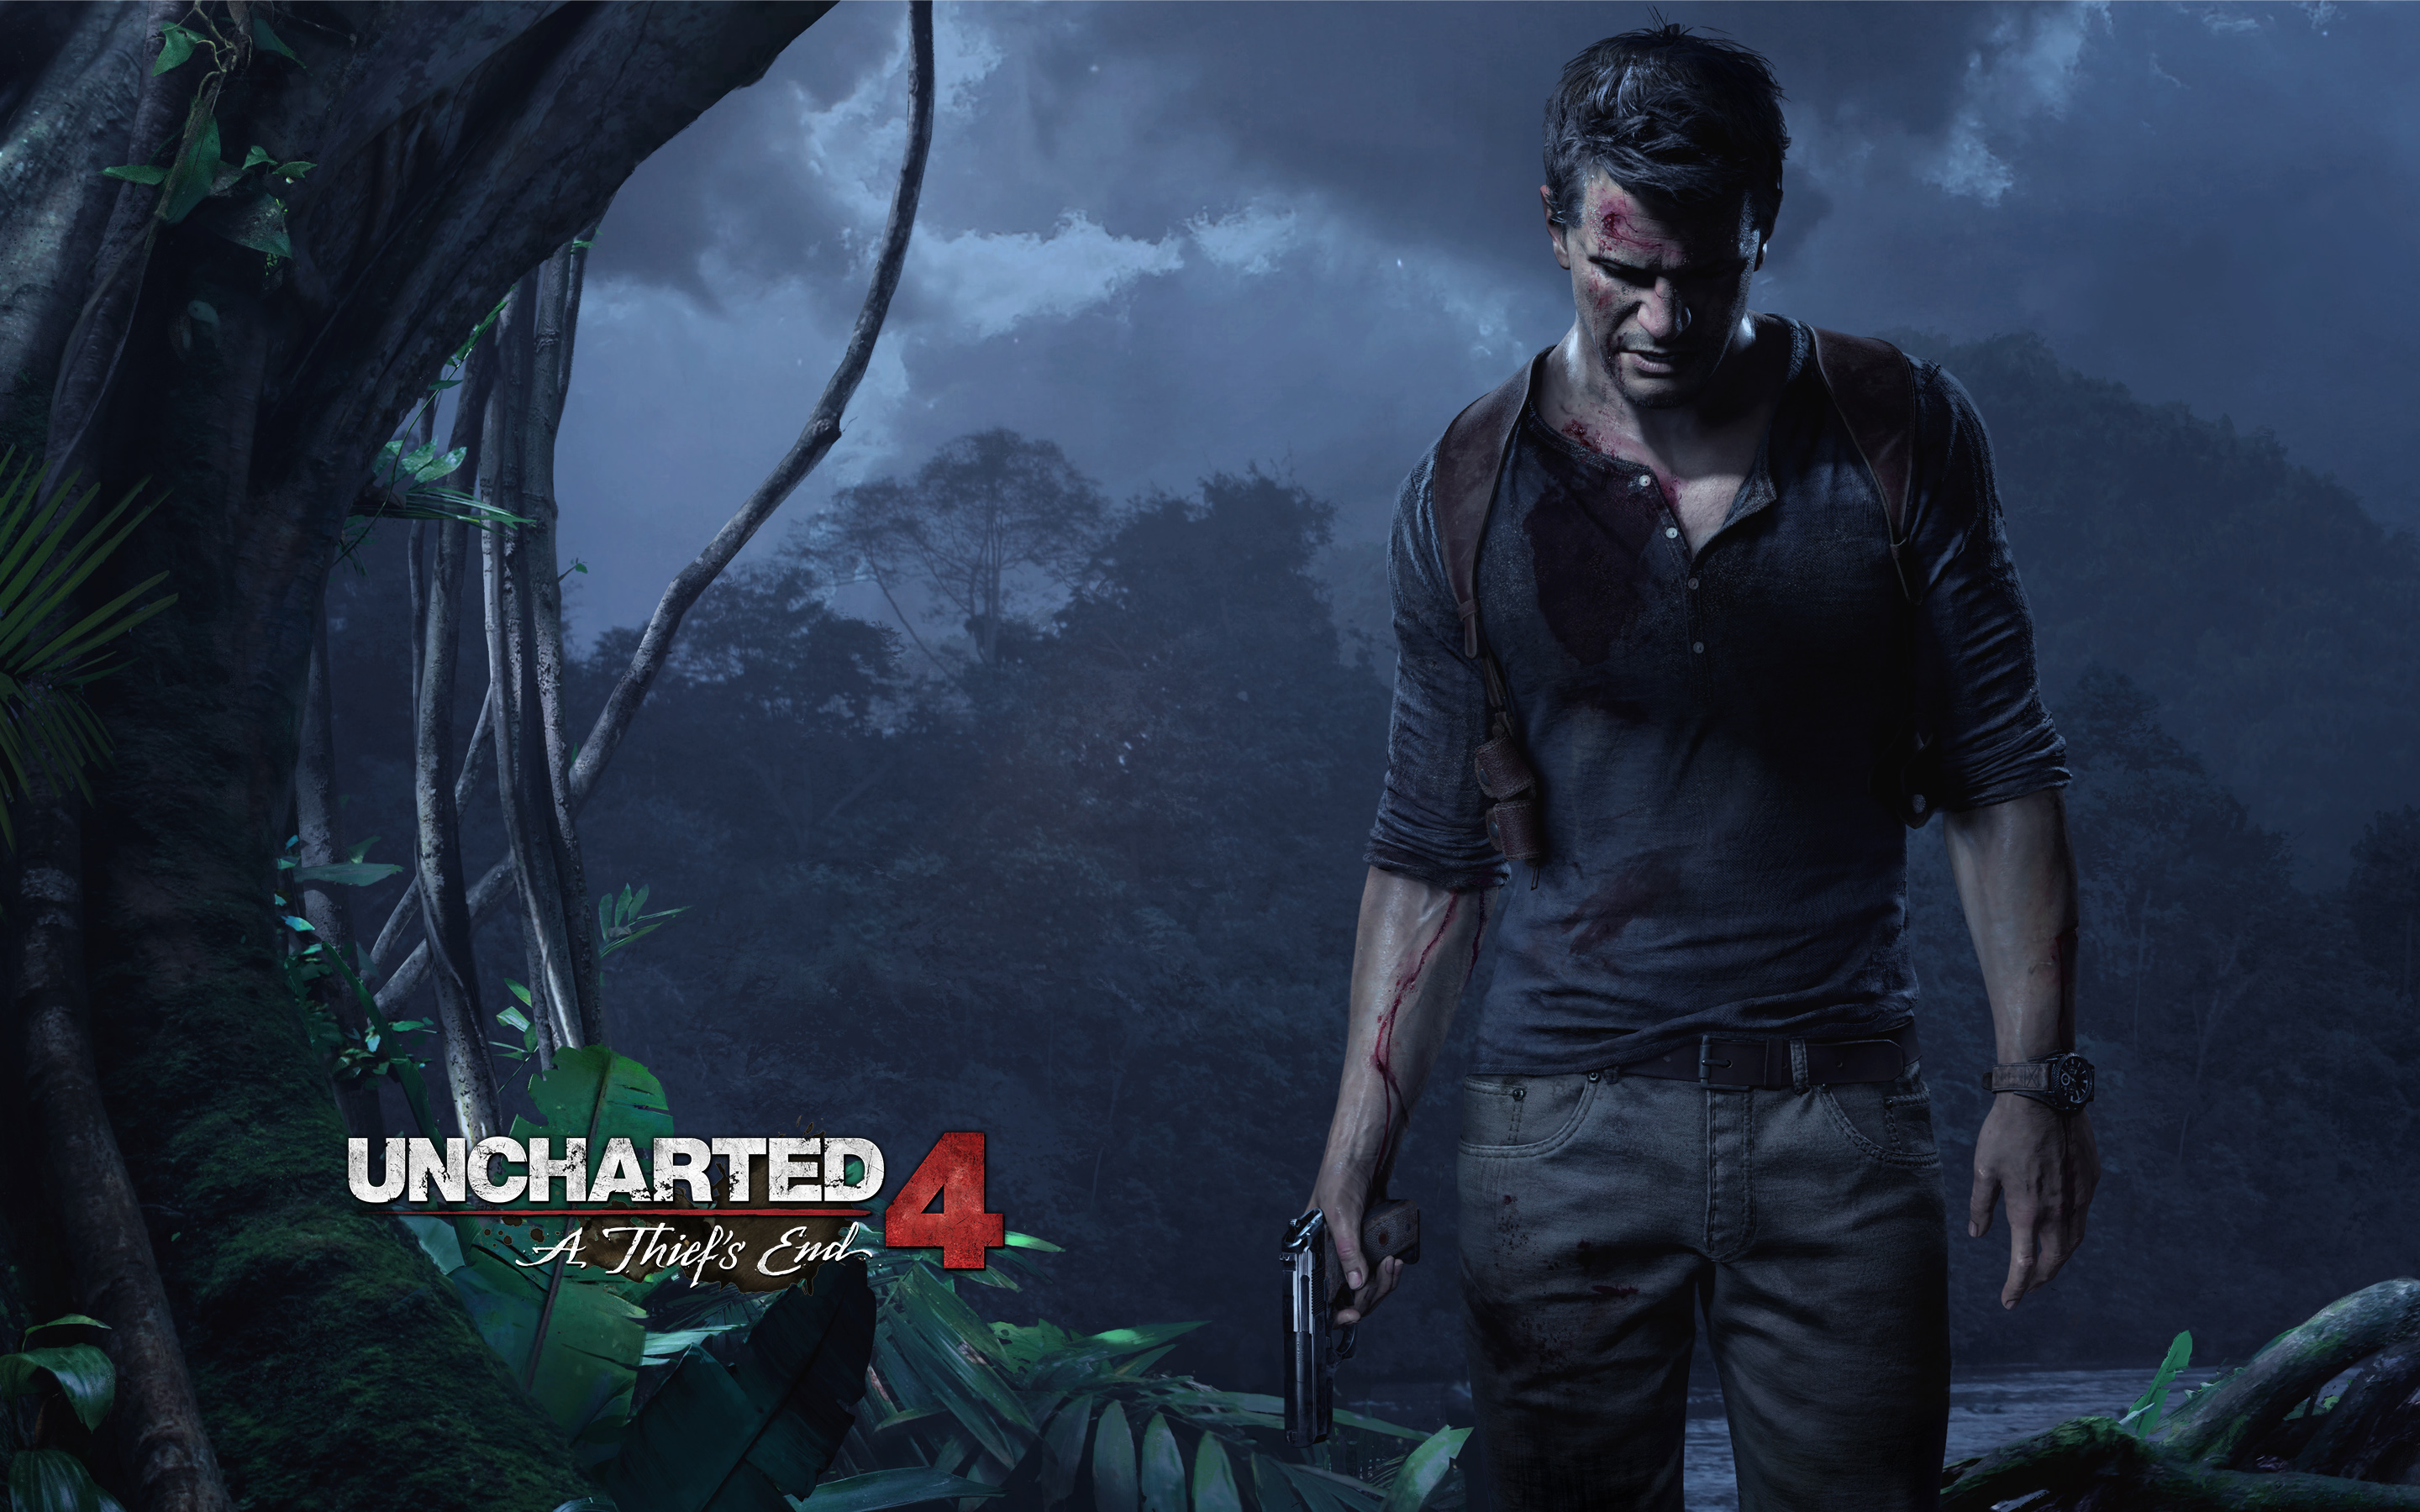 Uncharted 4 Wallpaper HD